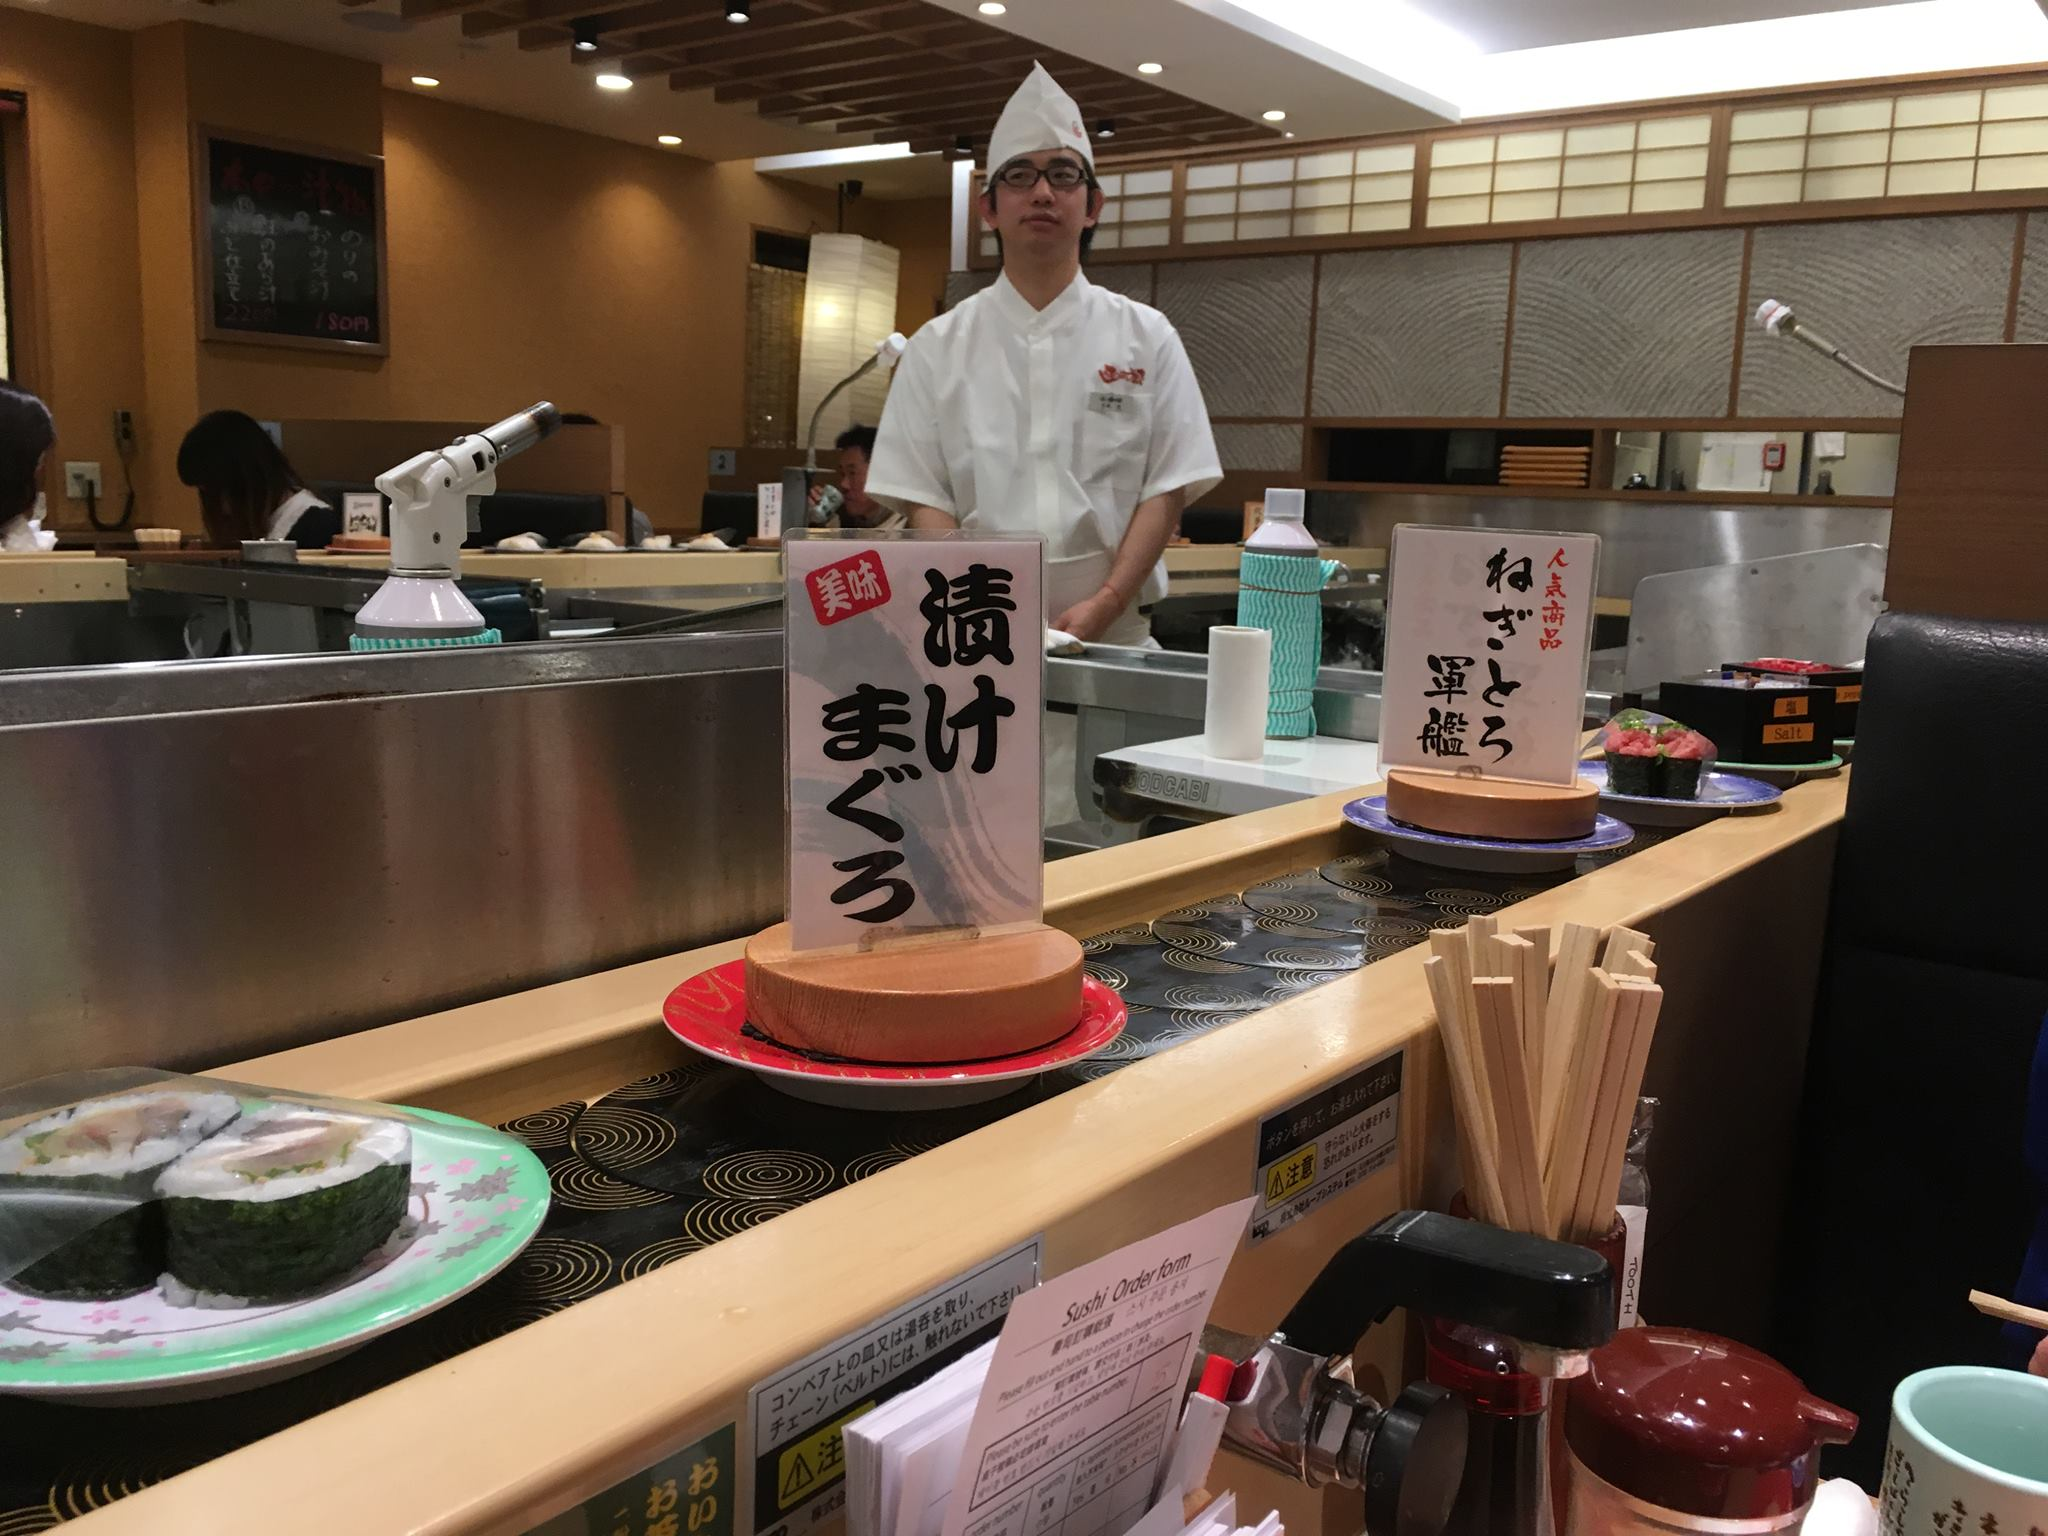 Conveyer-belt sushi.